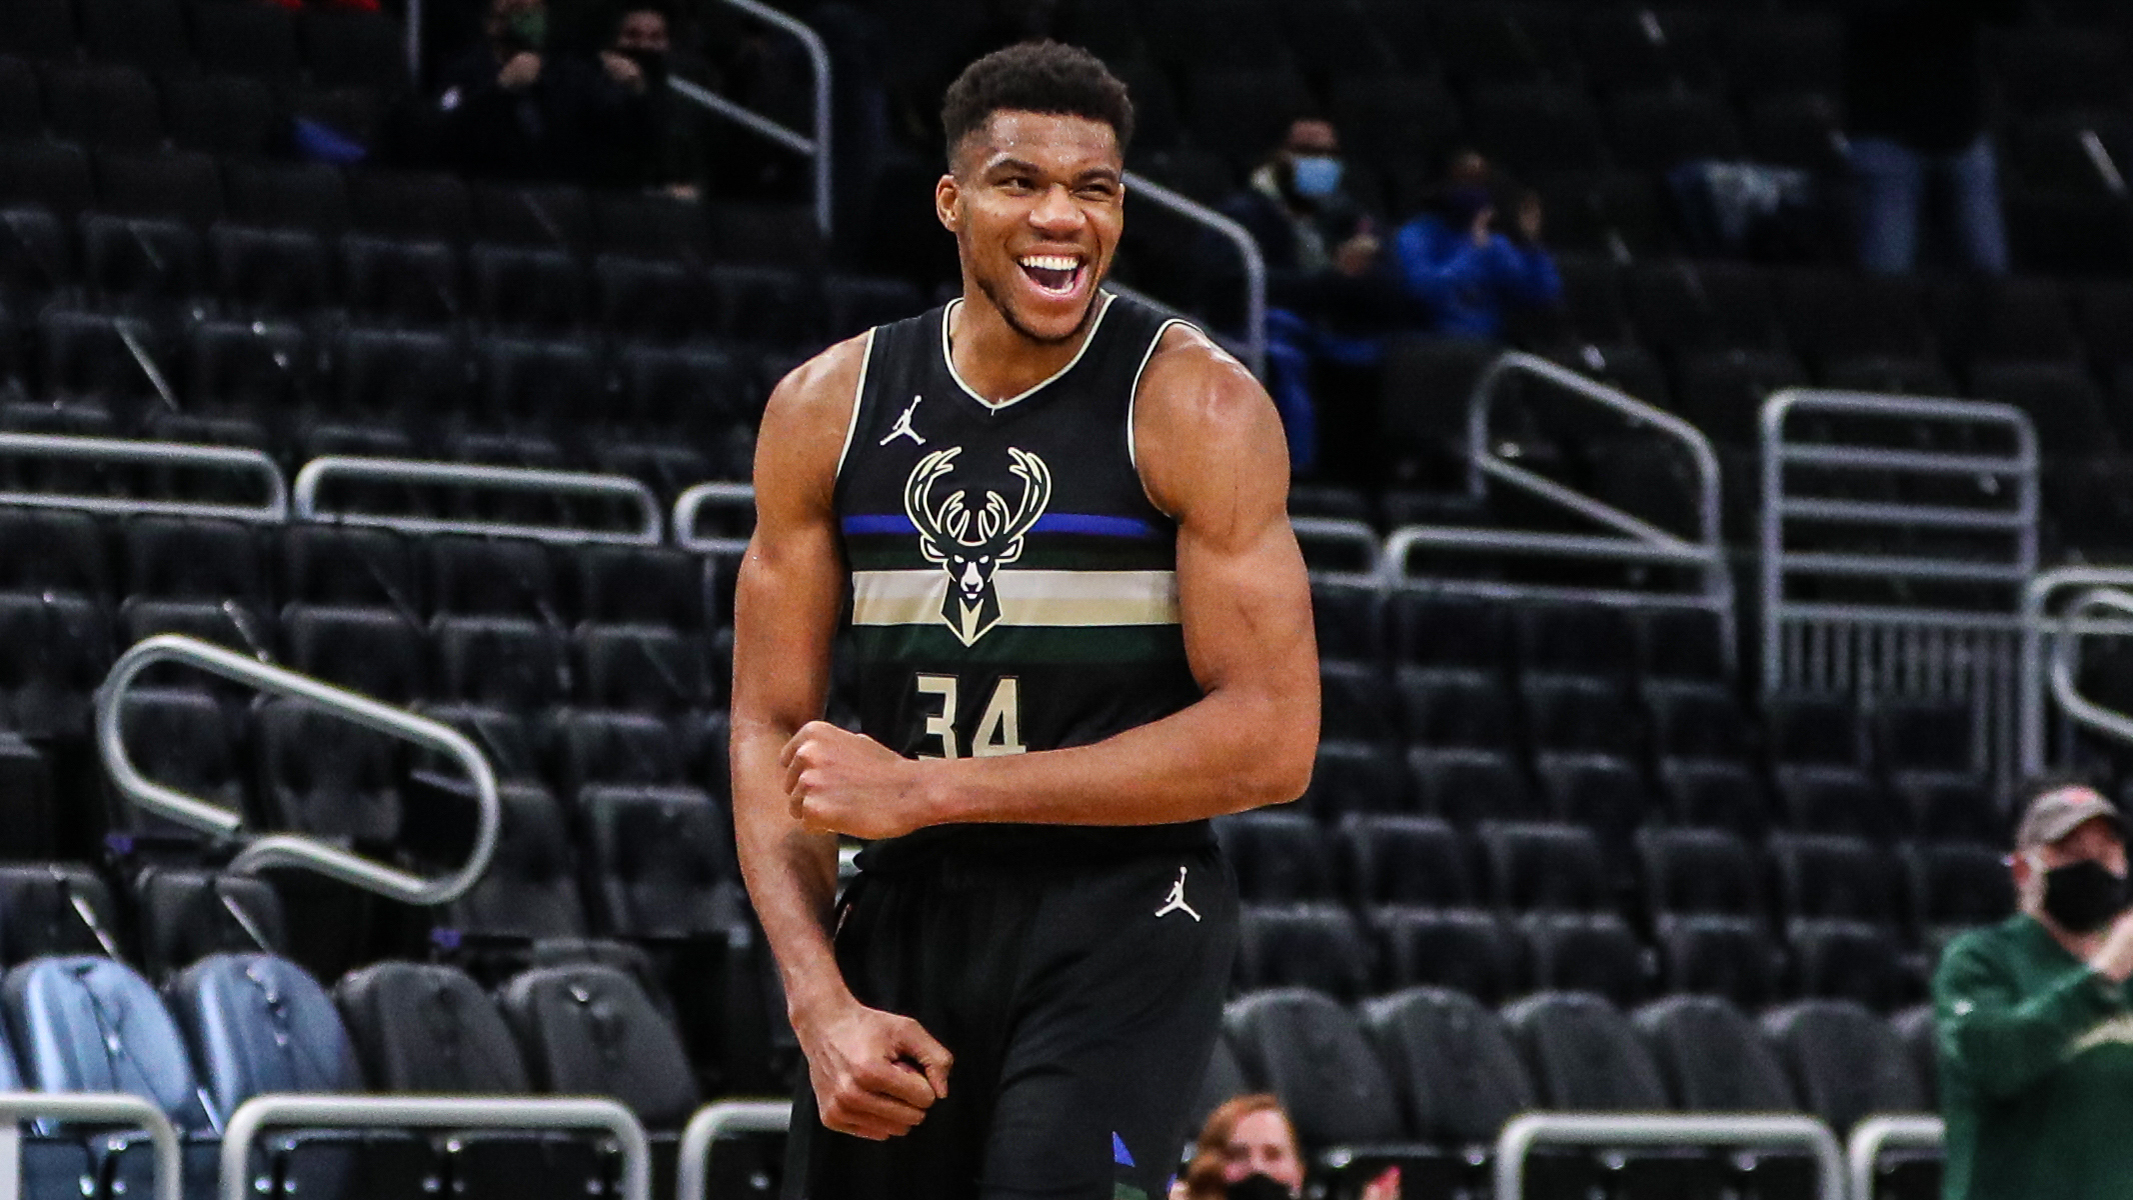 All-Access: Giannis Seals Win Over Clippers & Jrue Holiday Returns